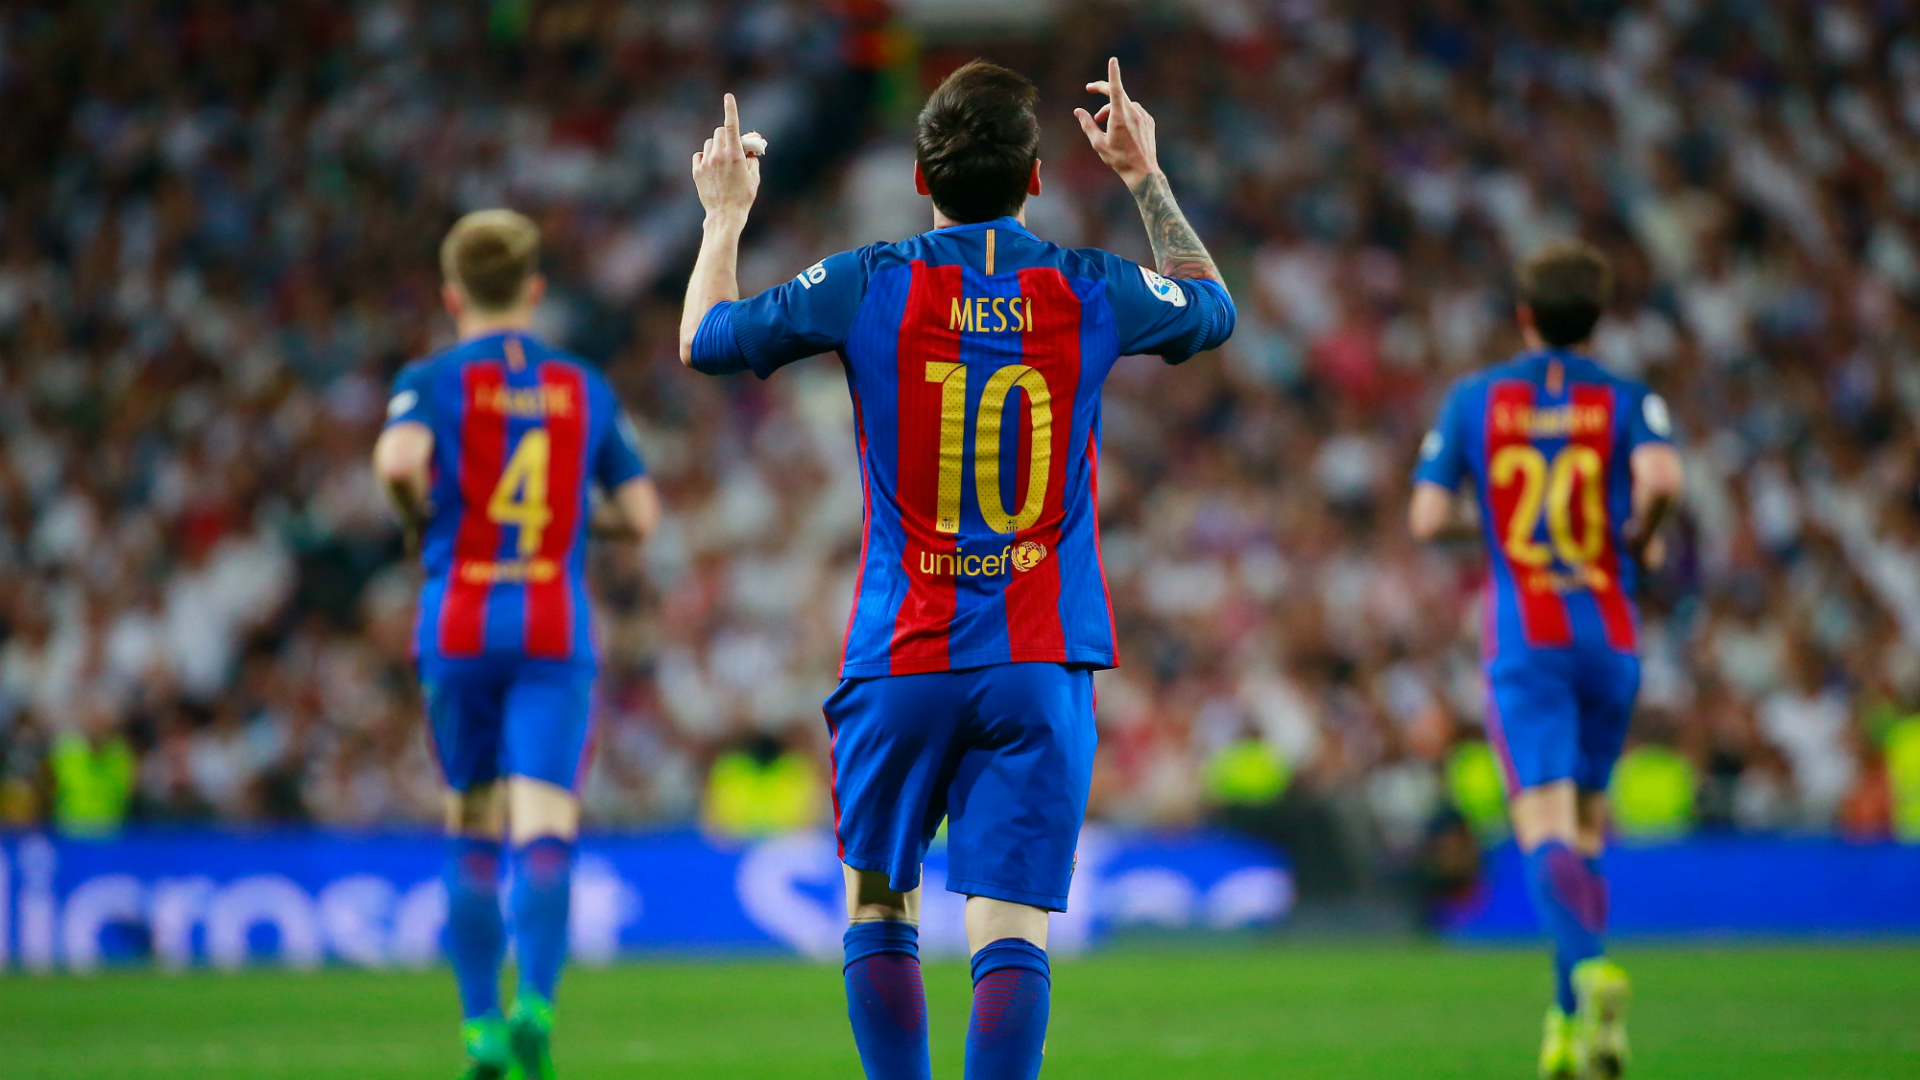 http://images.performgroup.com/di/library/GOAL/f9/af/lionel-messi-real-madrid-barcelona-23042017_6rveugpbaztb15gphxacinoaa.jpg